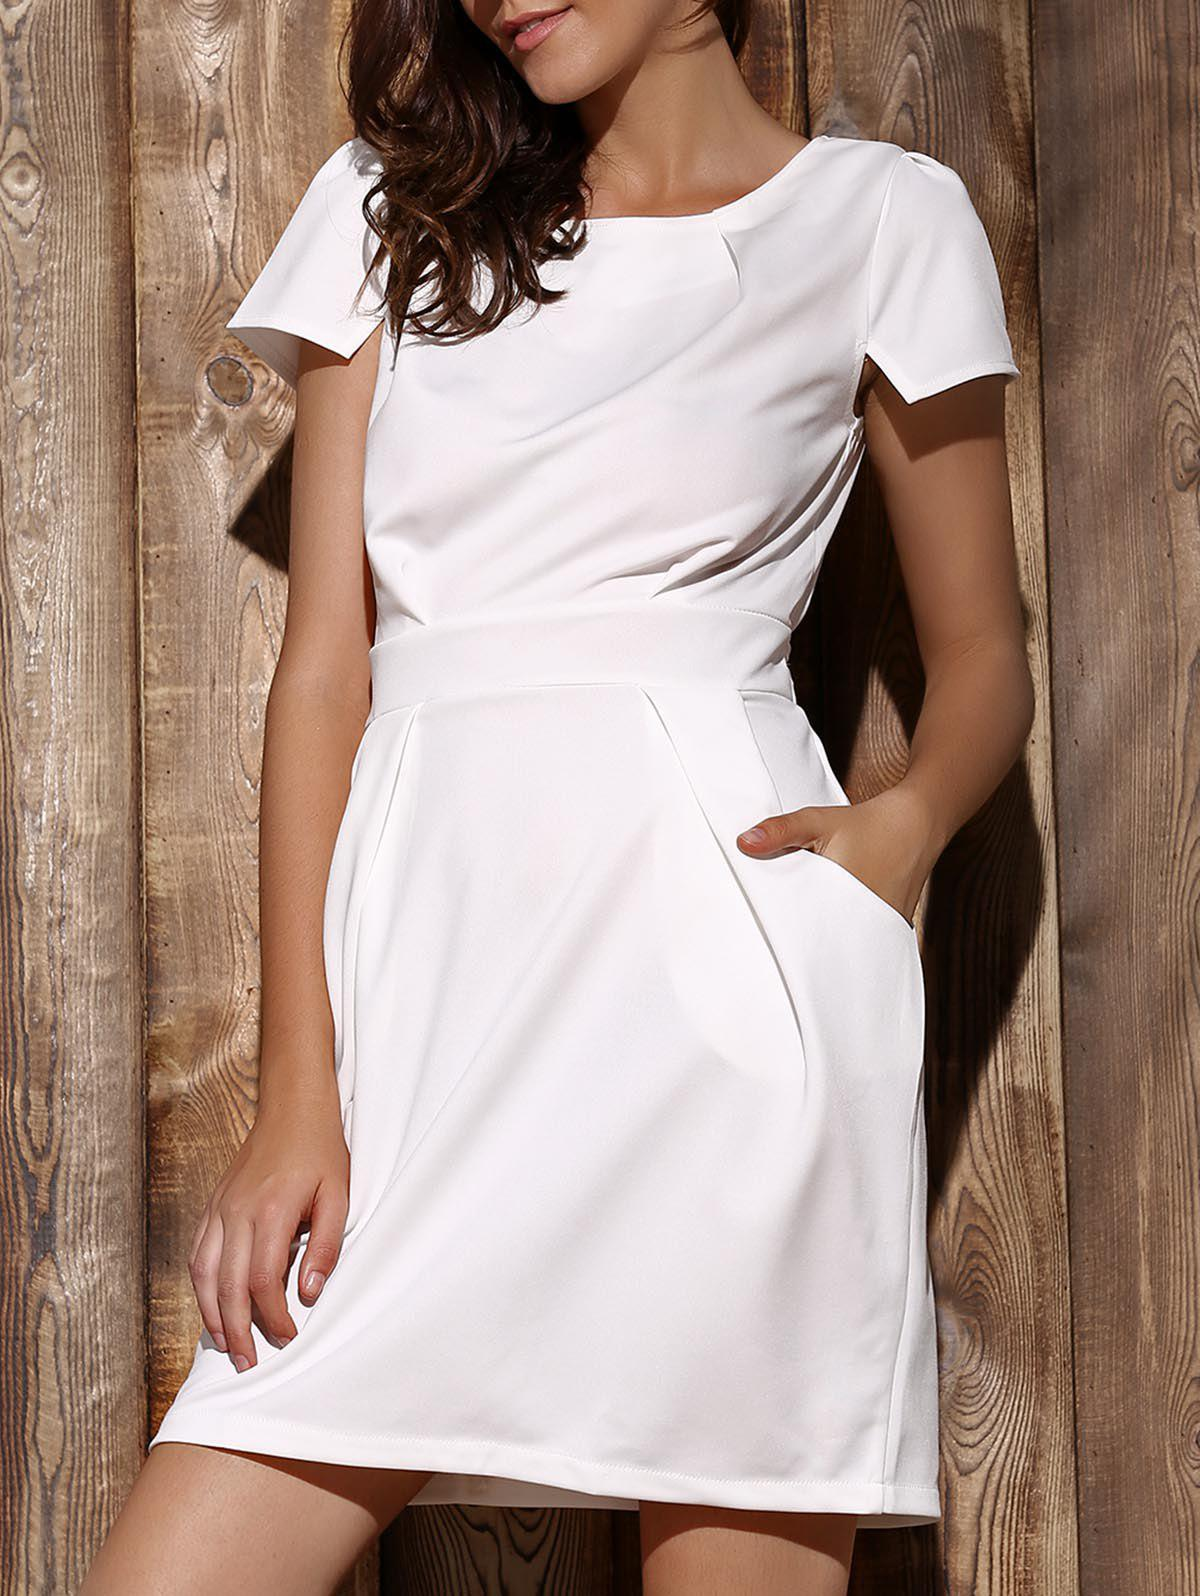 Chic Short Sleeve Round Collar Solid Color Pocket Design Women's Dress - WHITE S